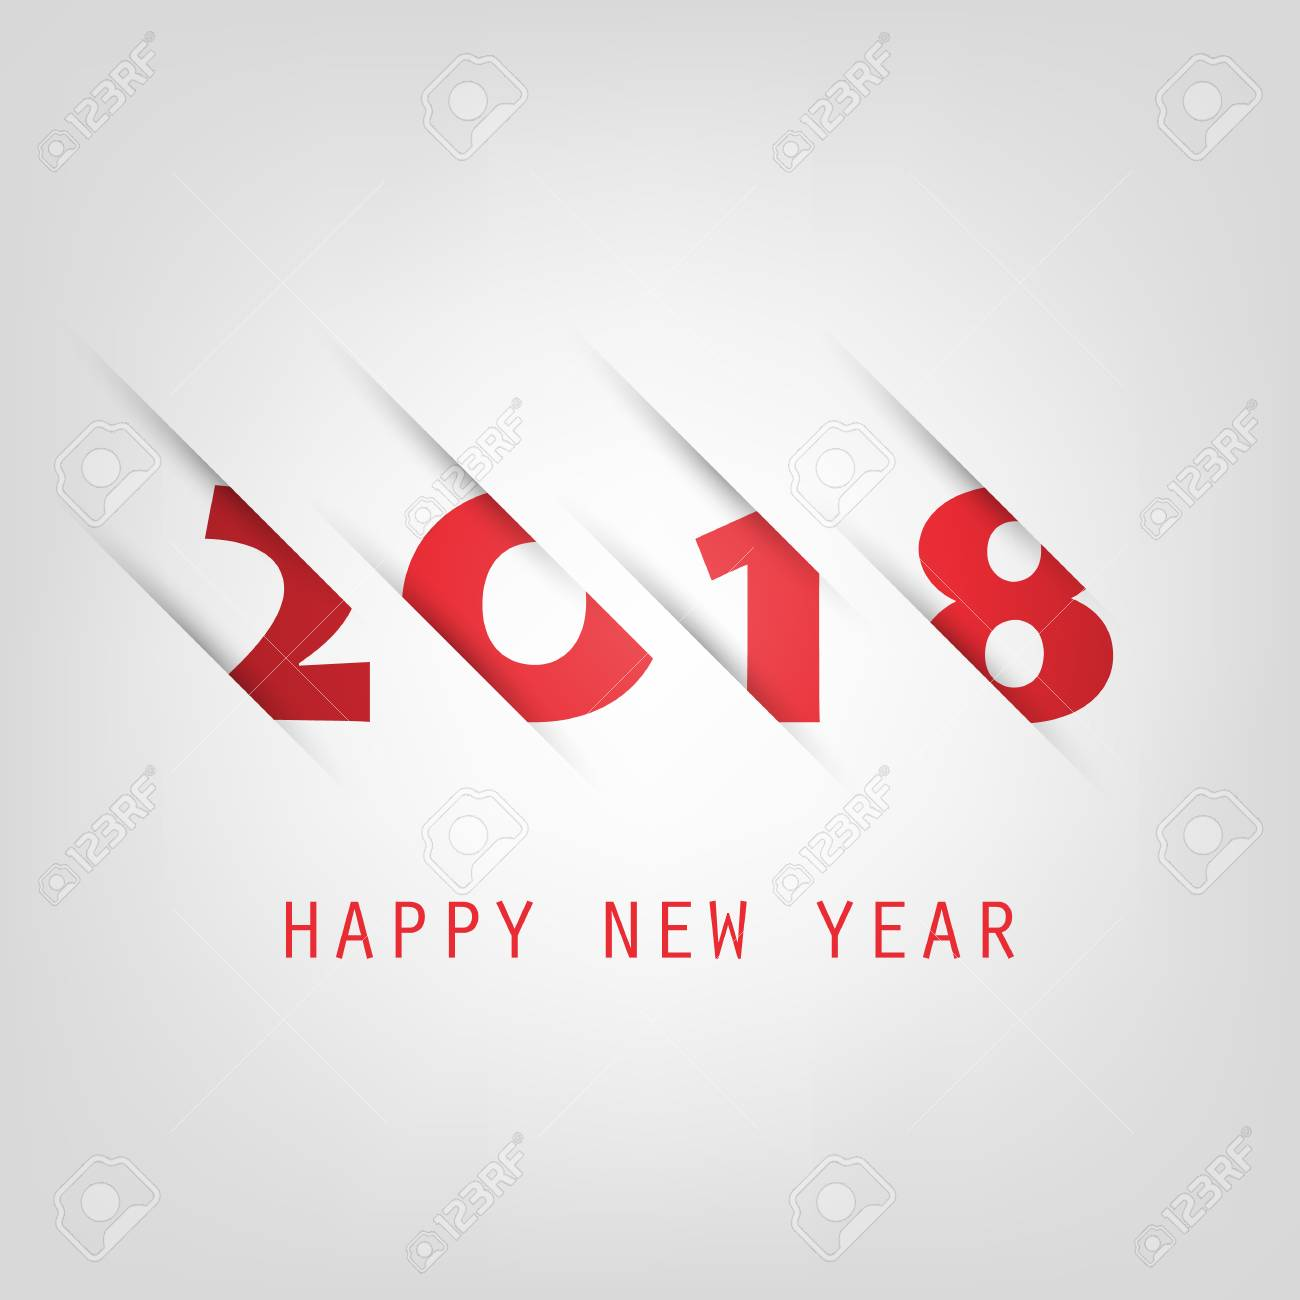 simple red and white new year card cover or background design template 2018 stock